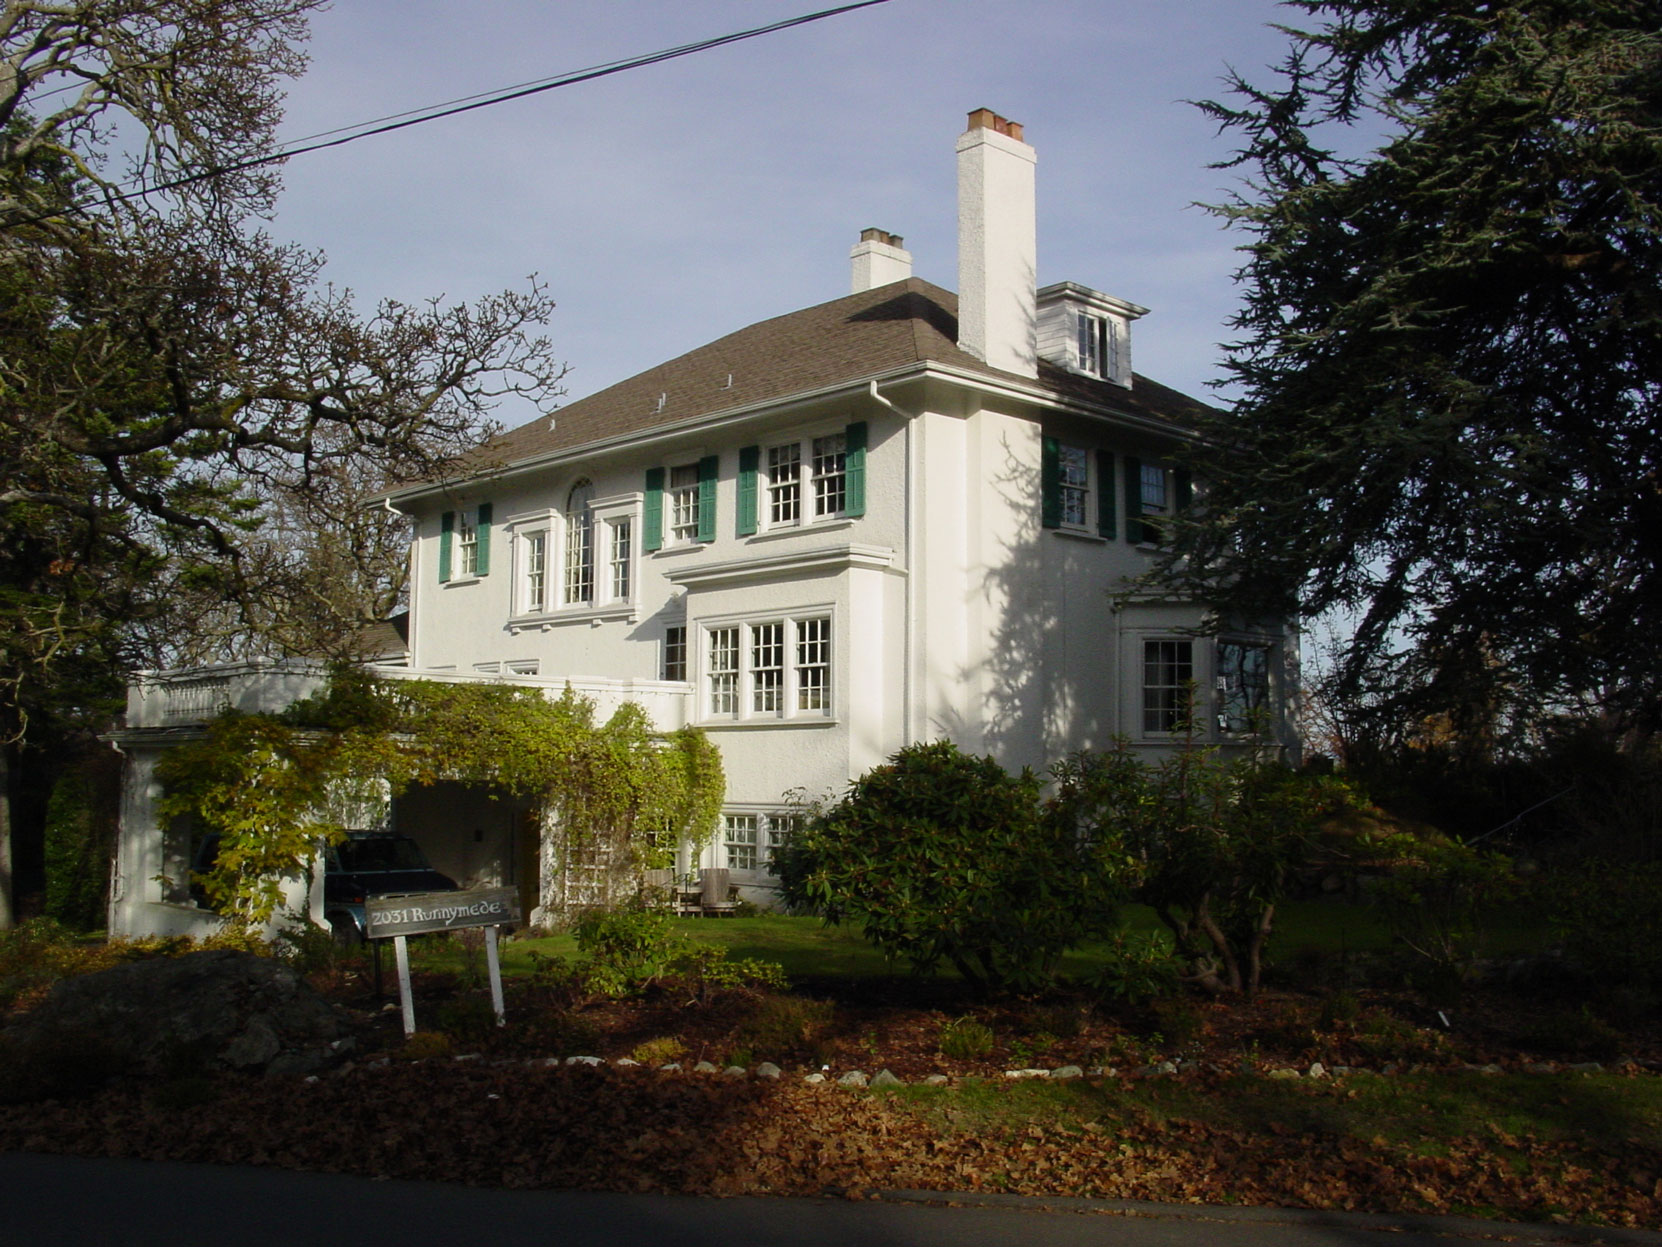 2031 Runnymede Avenue, November 2002. This house was designed by architect Samuel Maclure in 1916. (photo by Author)